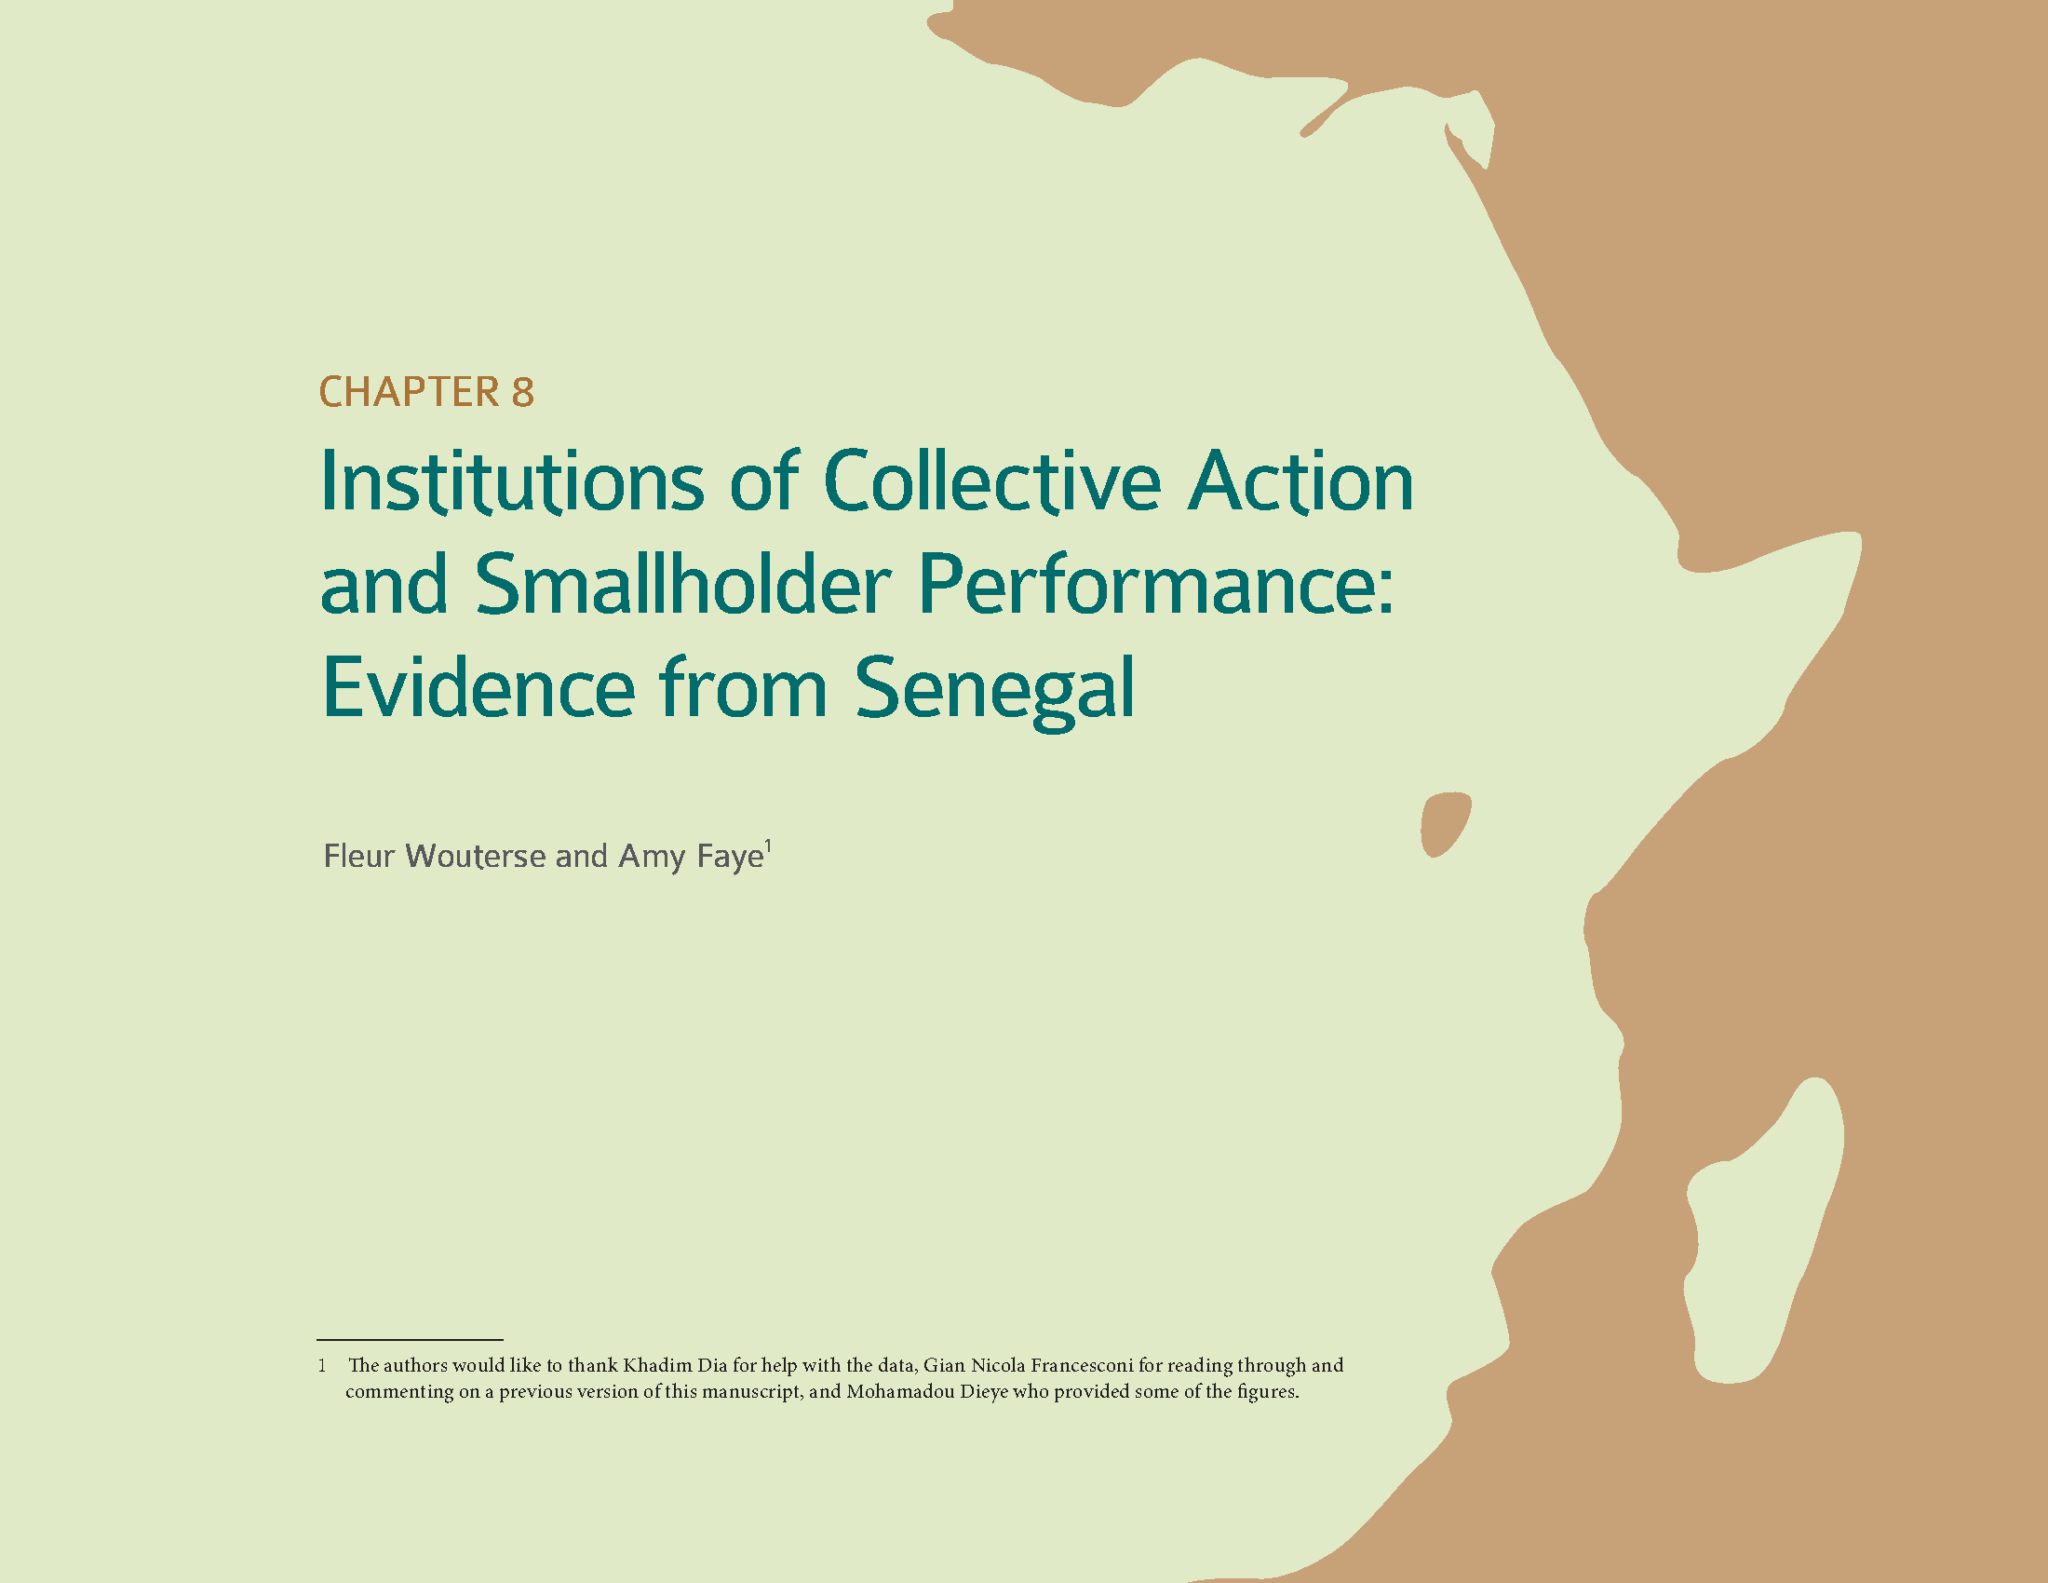 Chapter - Institutions of Collective Action and Smallholder Performance: Evidence from Senegal